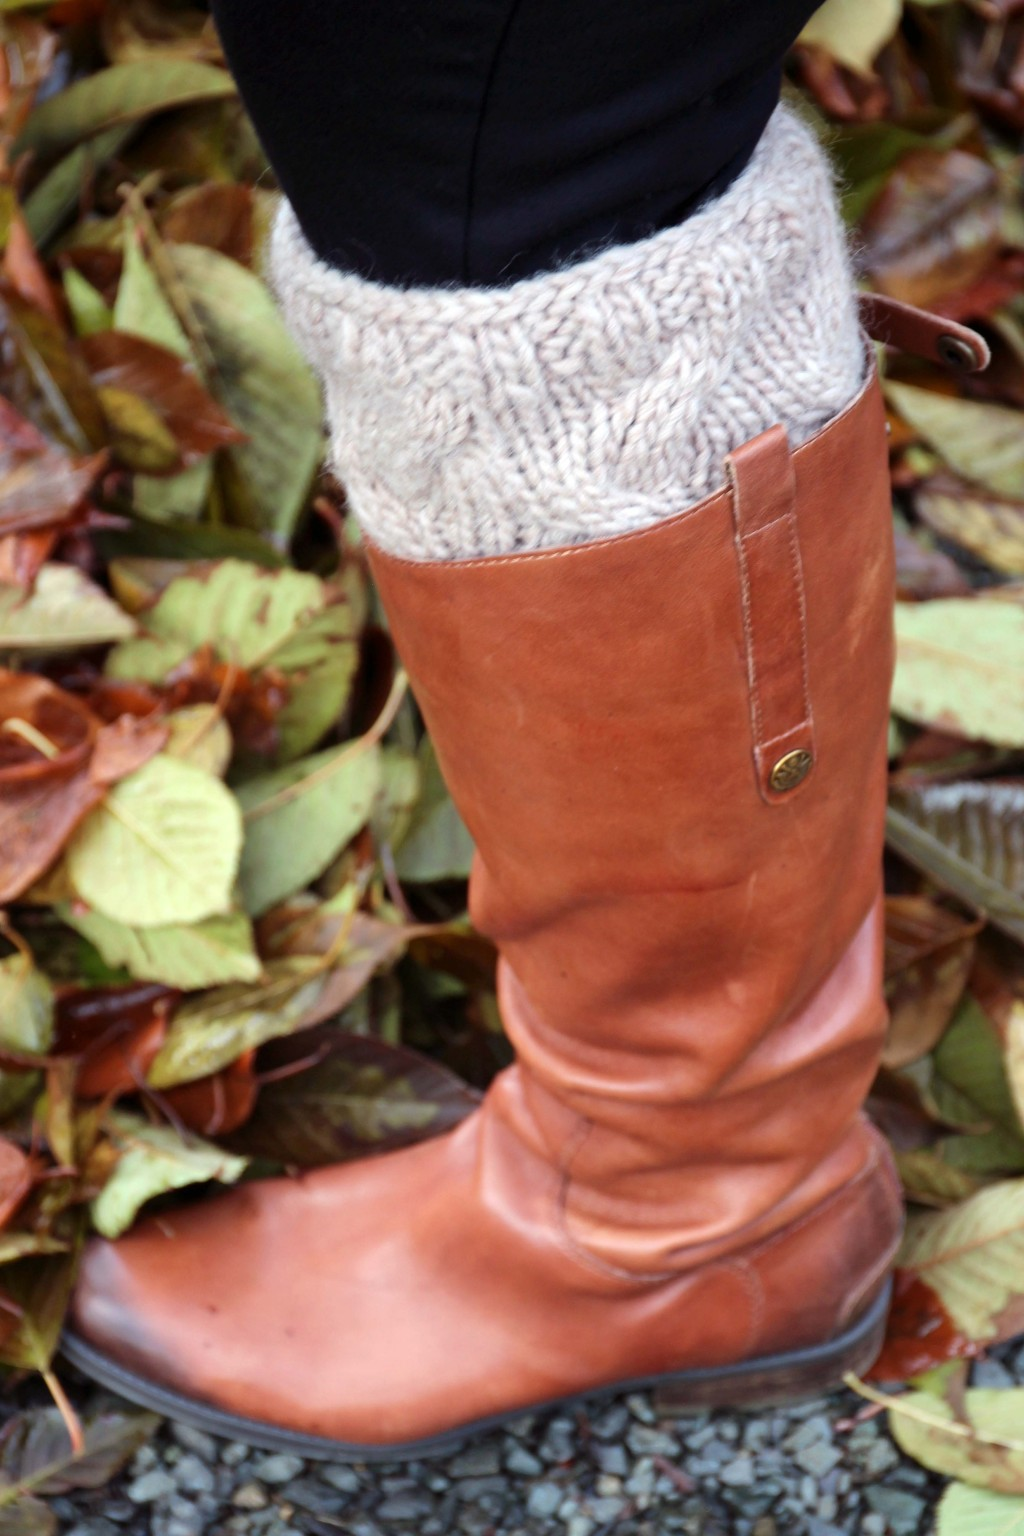 Knitted boot cuffs and boots